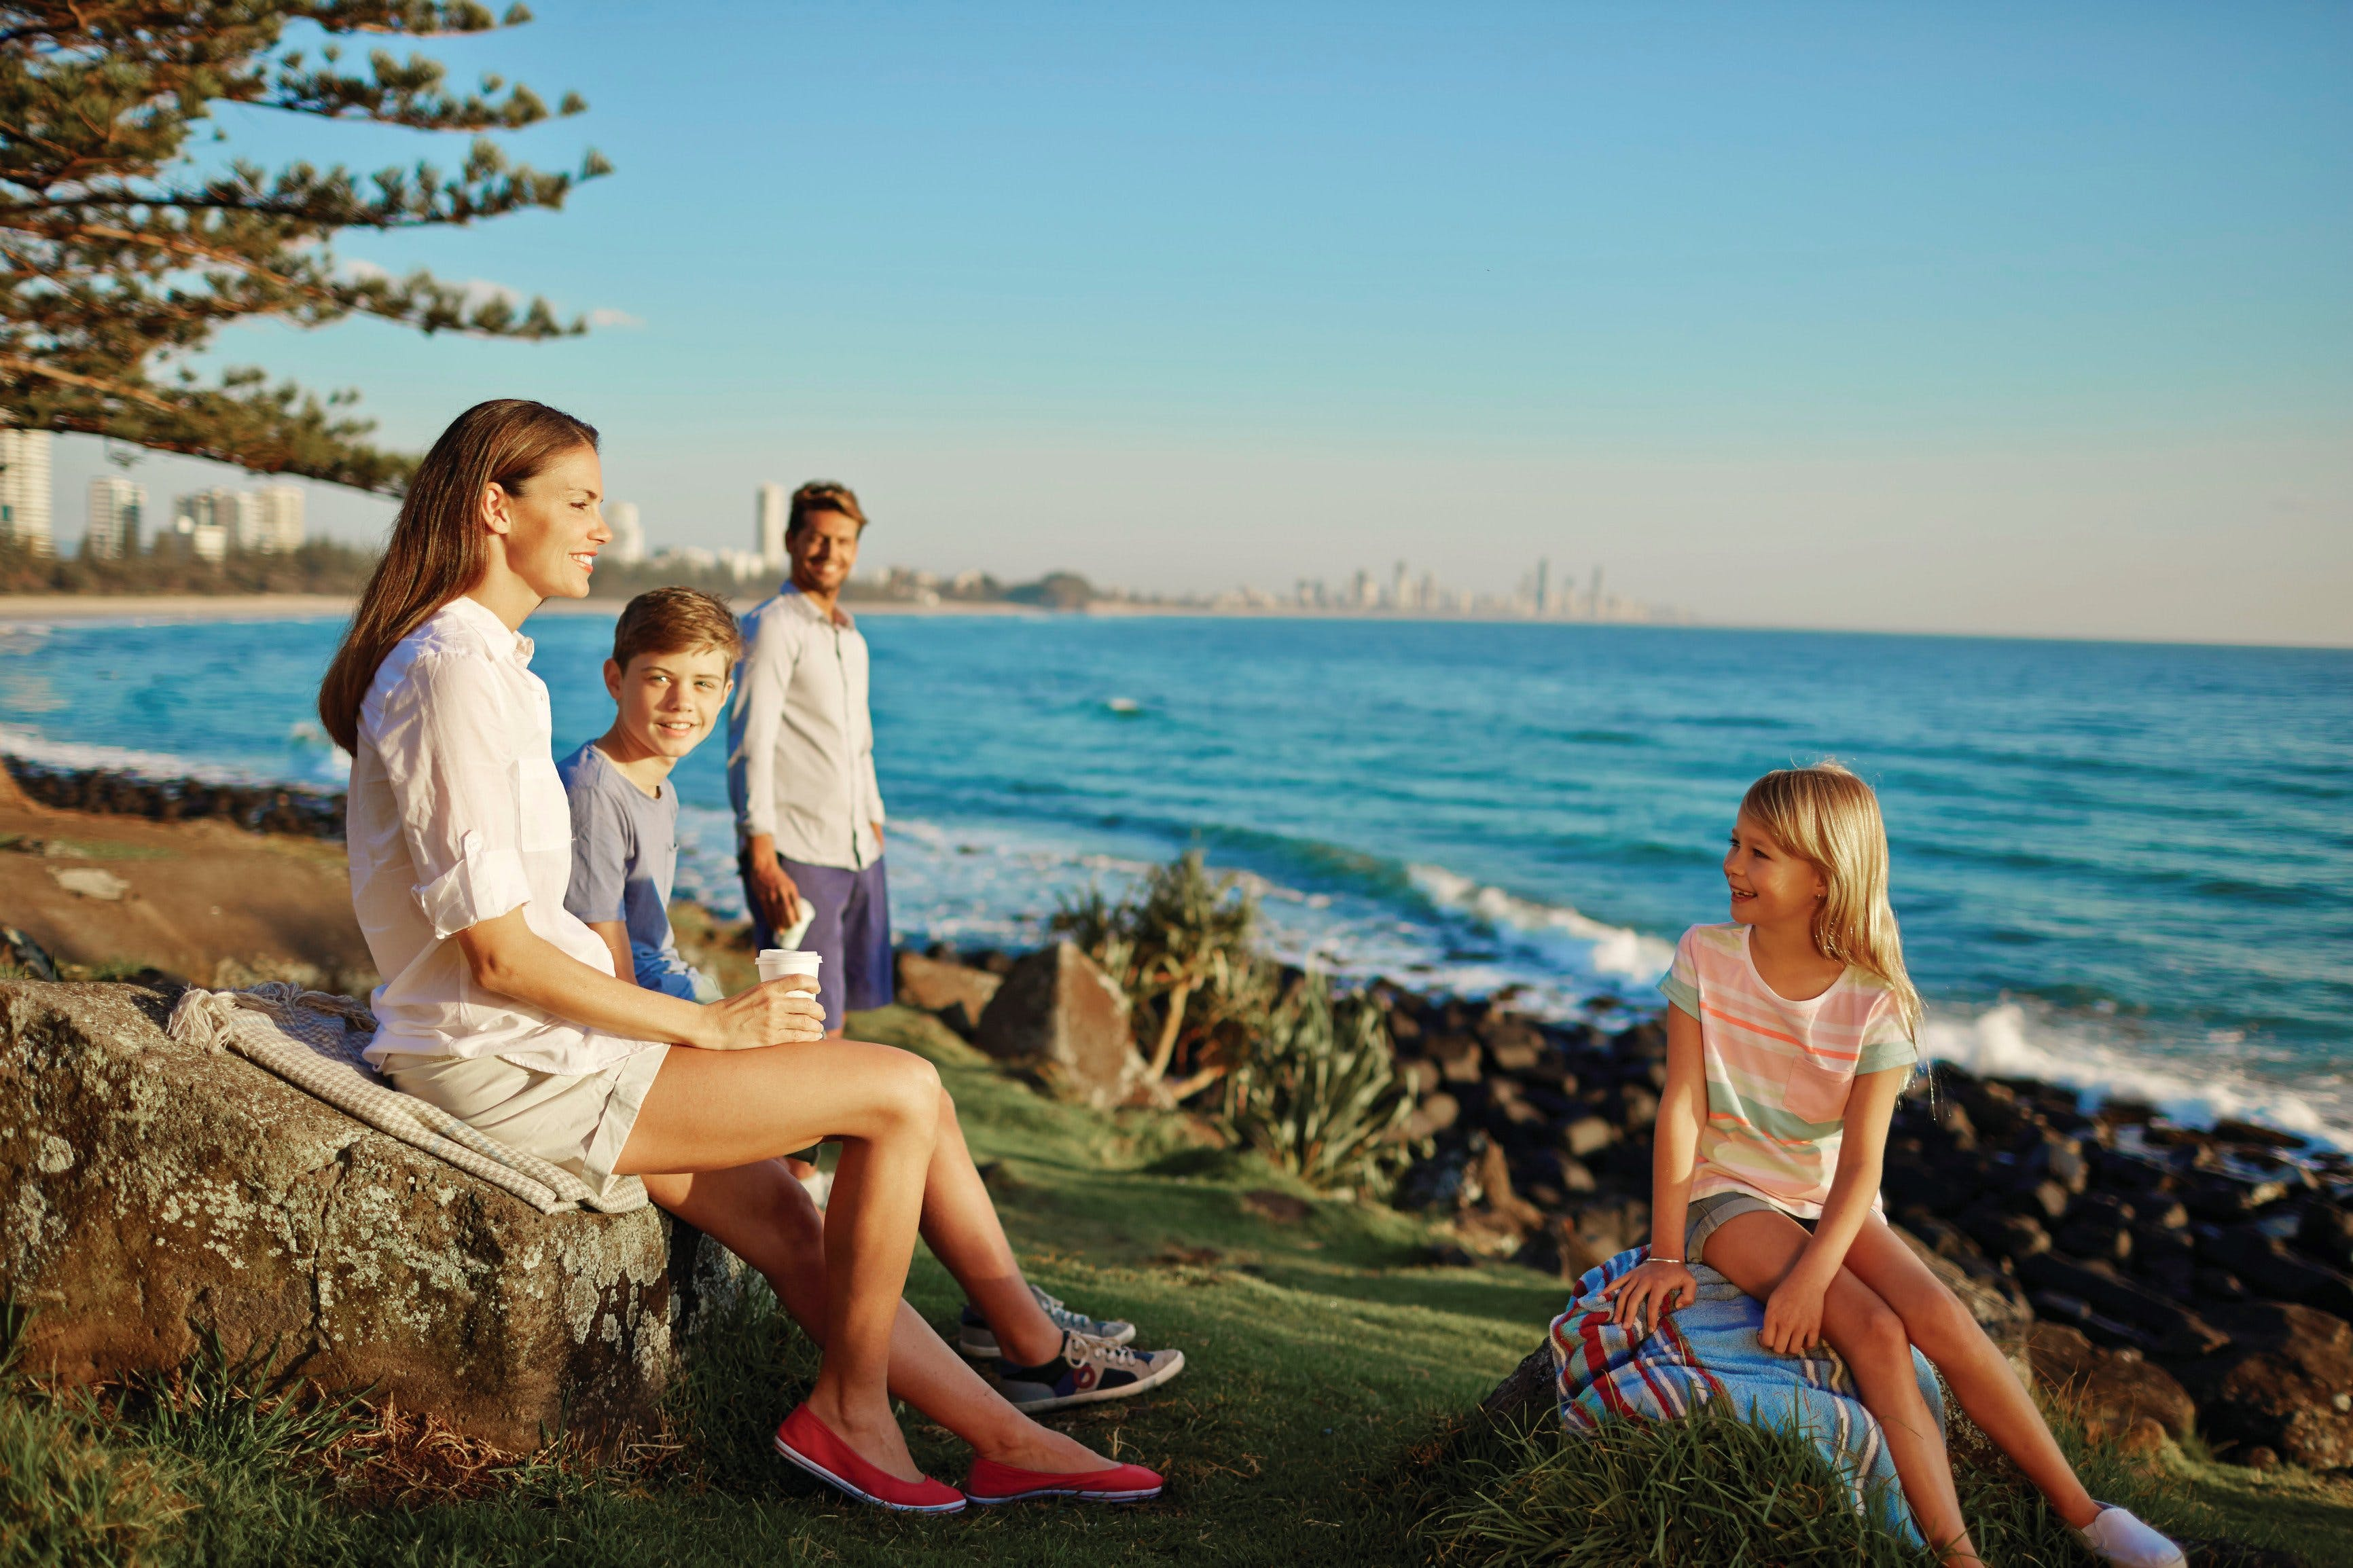 Oceanview Walk Burleigh Head National Park - Tweed Heads Accommodation